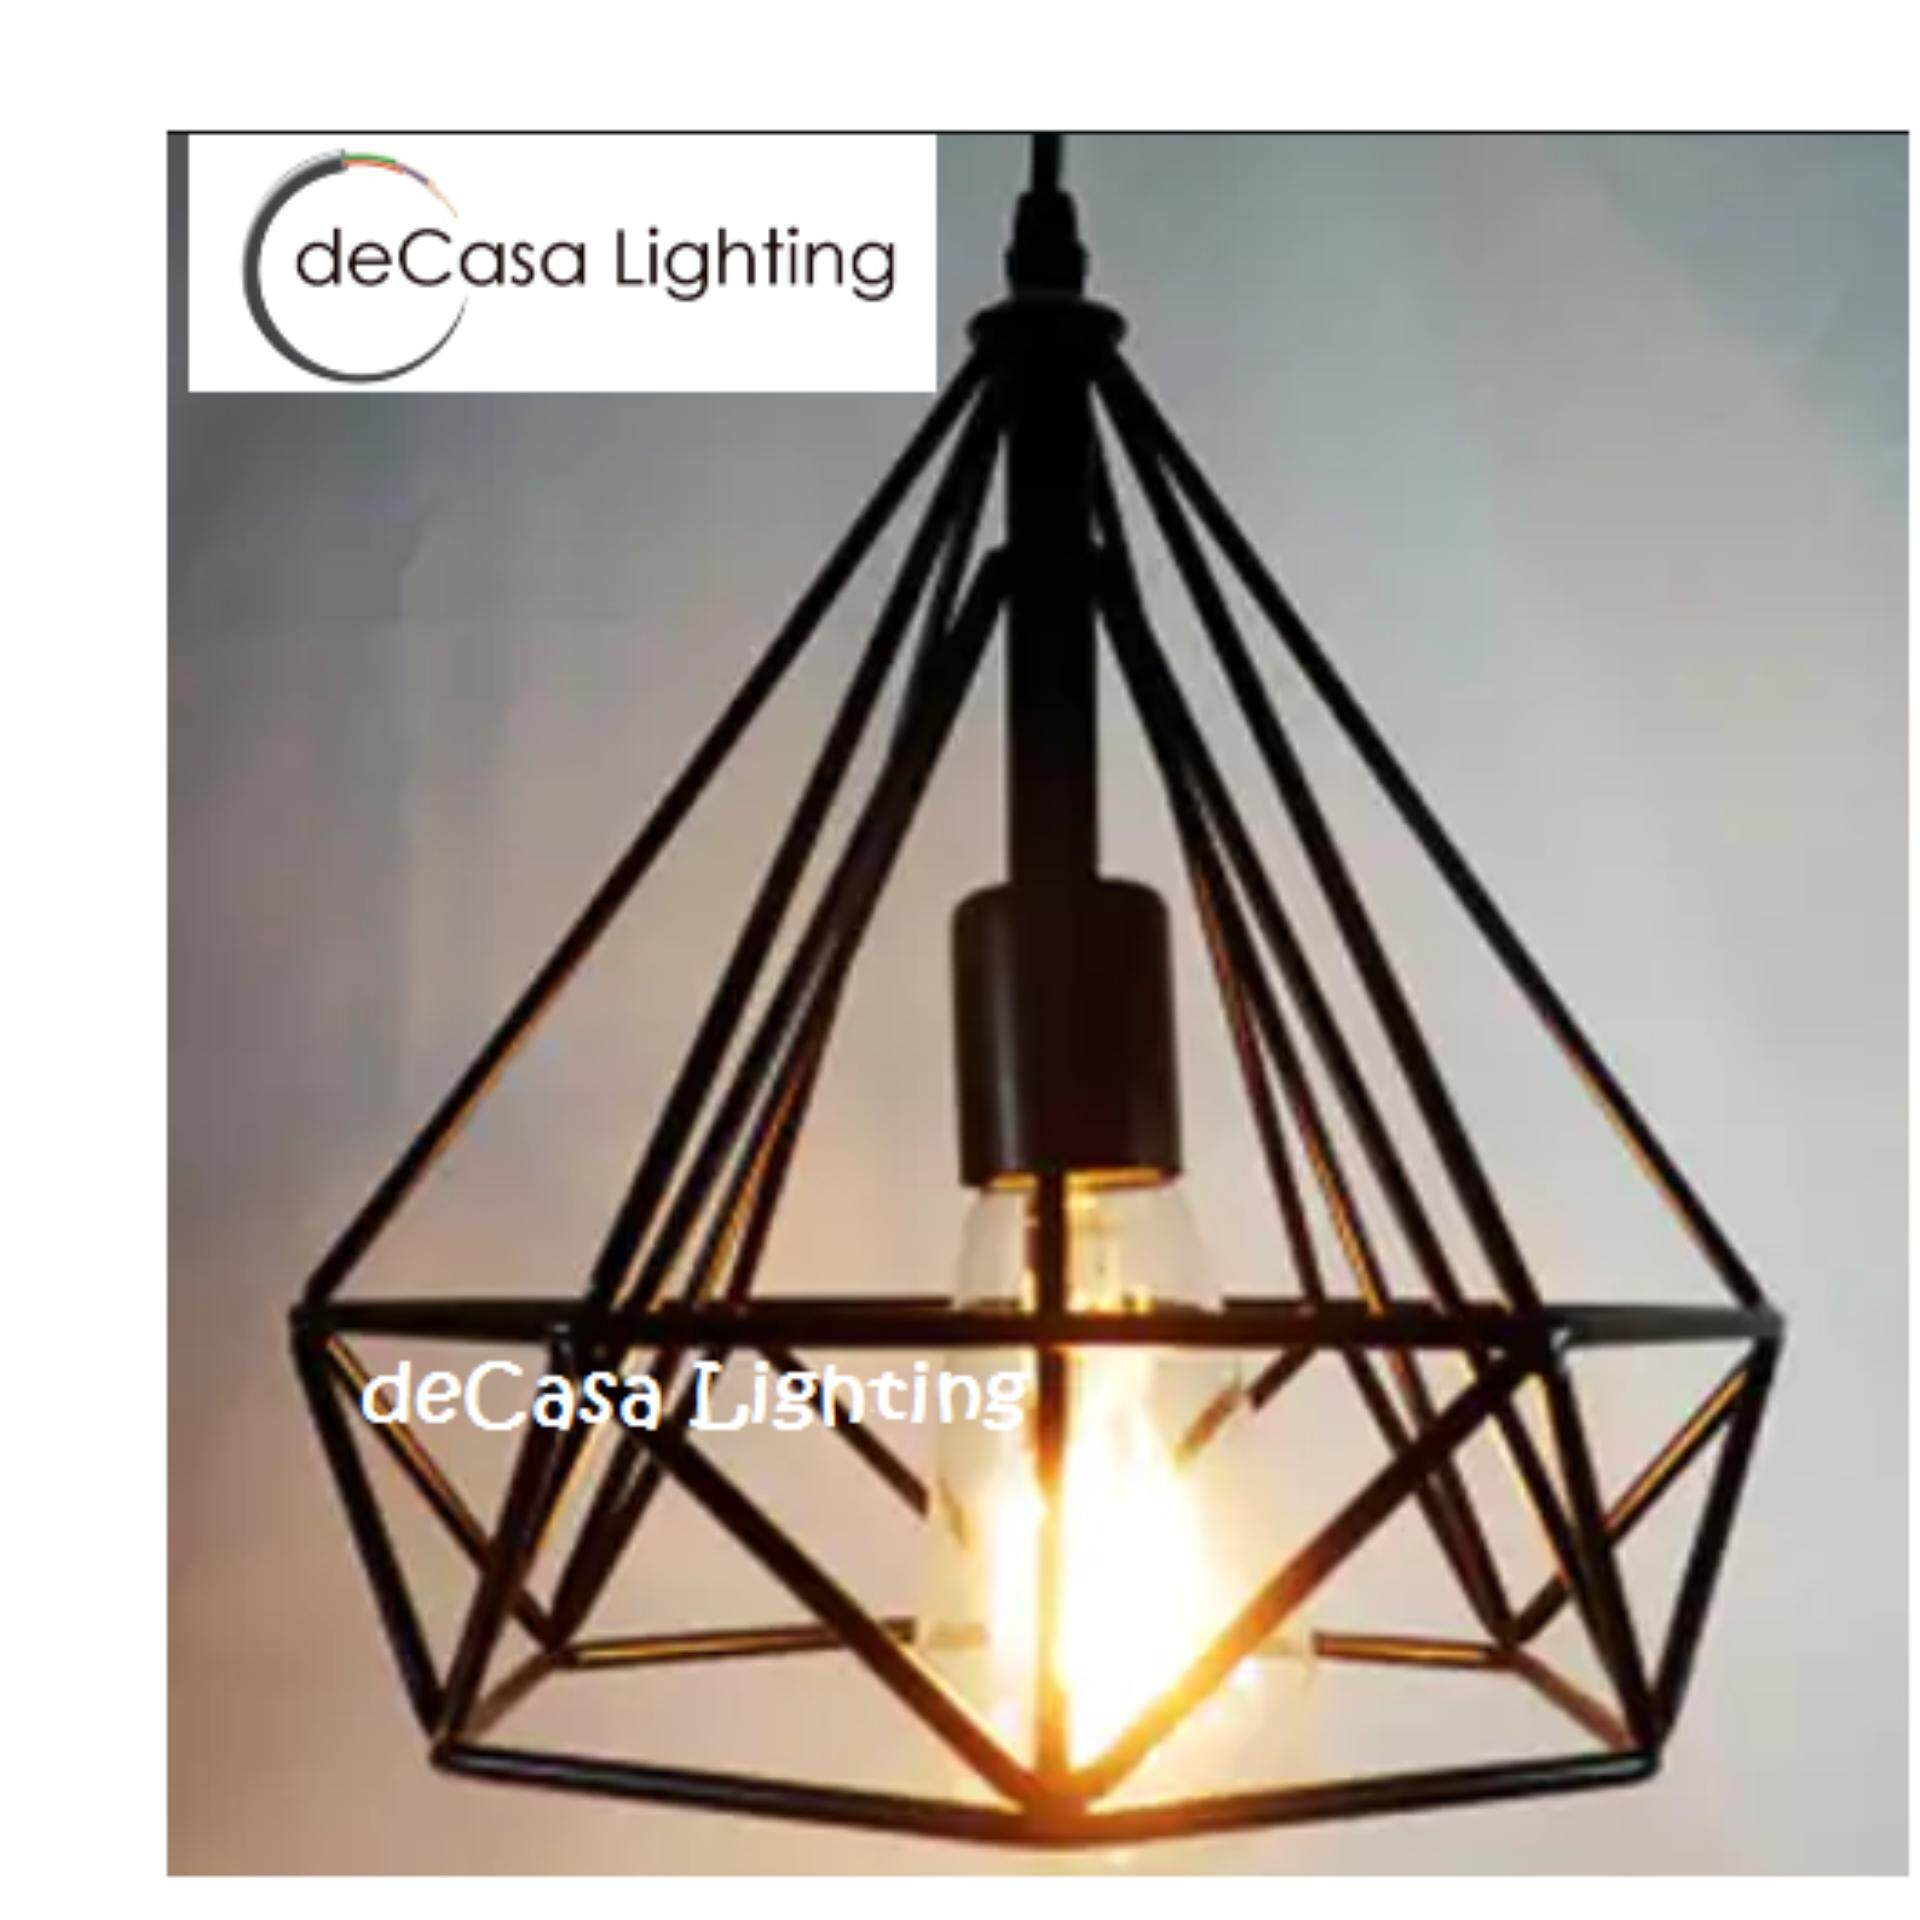 25cm Loft Ceiling Hanging Decorative Light Triangle Shape Ceiling Light Lamp Shade Hanging Light( Plain or White or Brown)